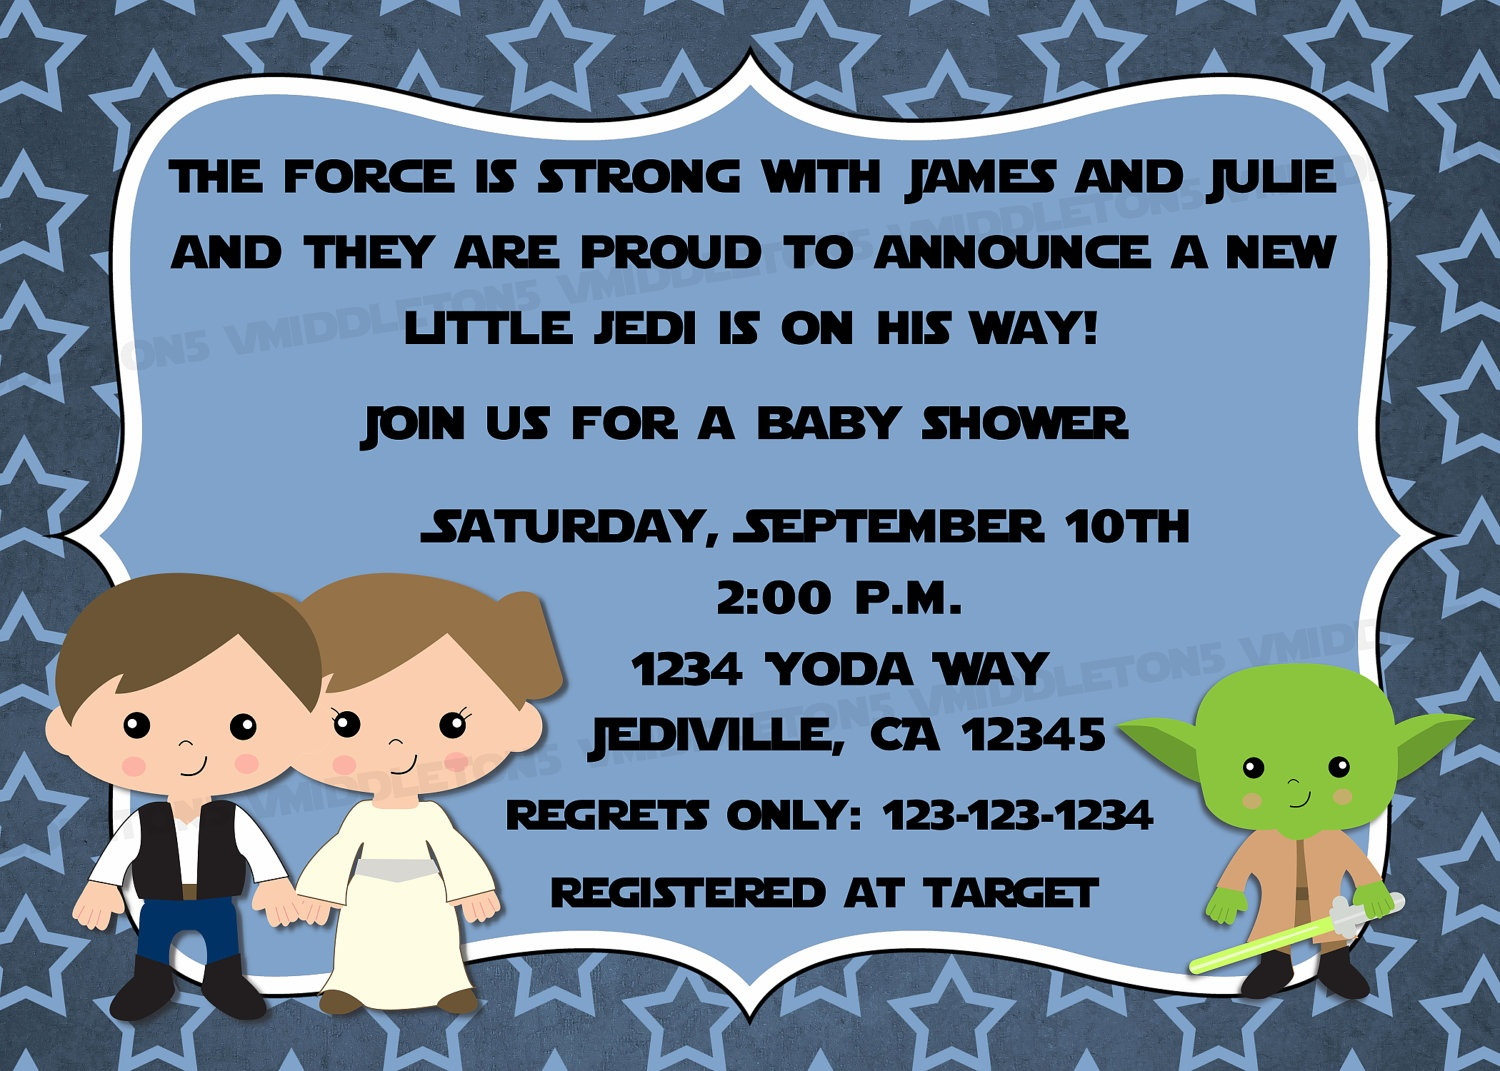 Jedi Star Wars Theme Inspired Baby Shower Invitation With   Etsy - Free Printable Star Wars Baby Shower Invites